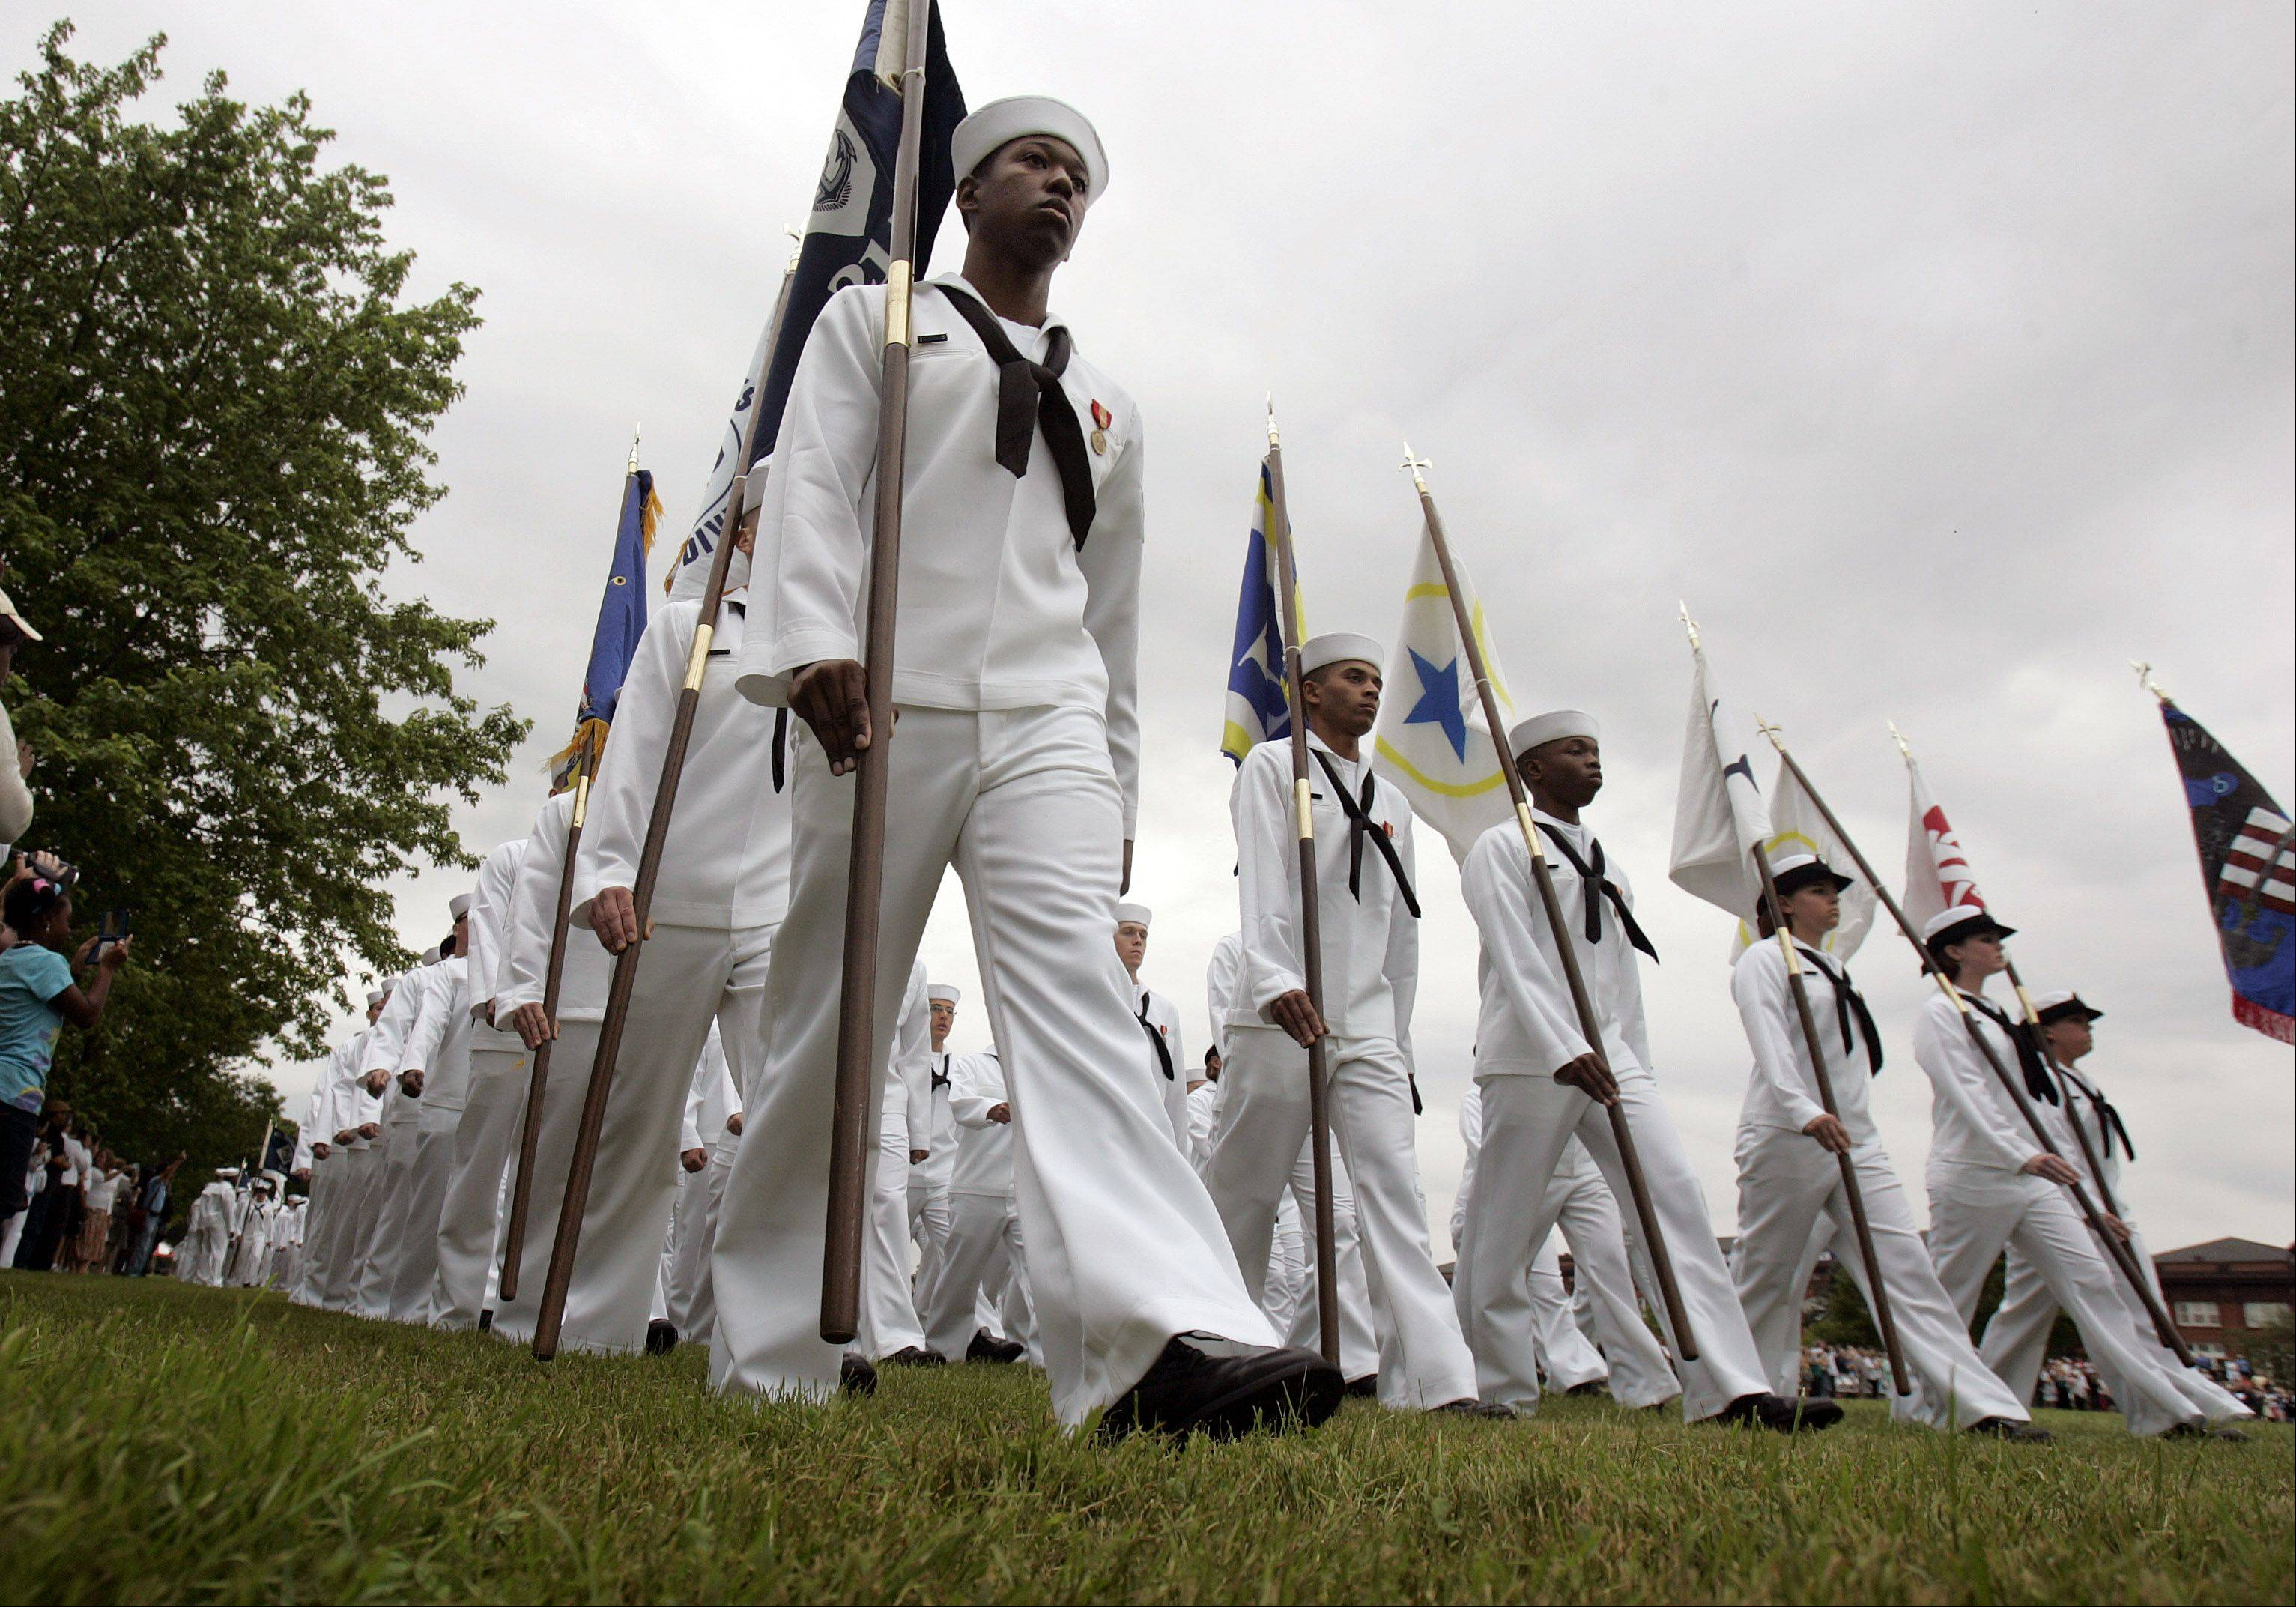 Recruit units march onto Ross Field at Great Lakes Naval Station during graduating ceremonies Friday. About 1,000 recruits on its 100th anniversary.